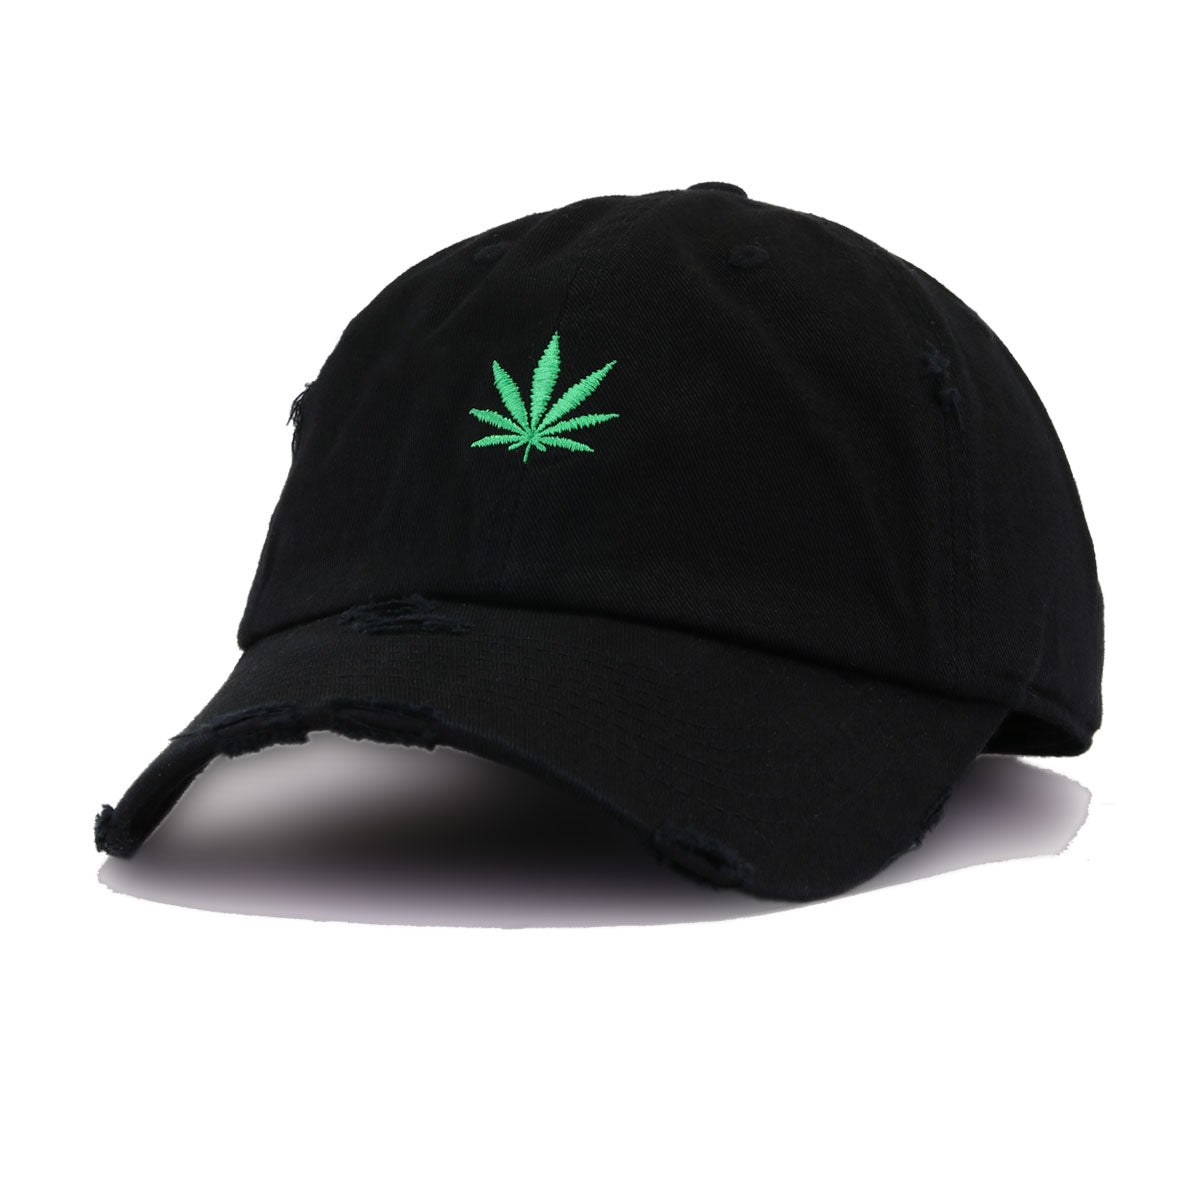 Distressed Leaf Black KBEthos Vintage Dad Hat